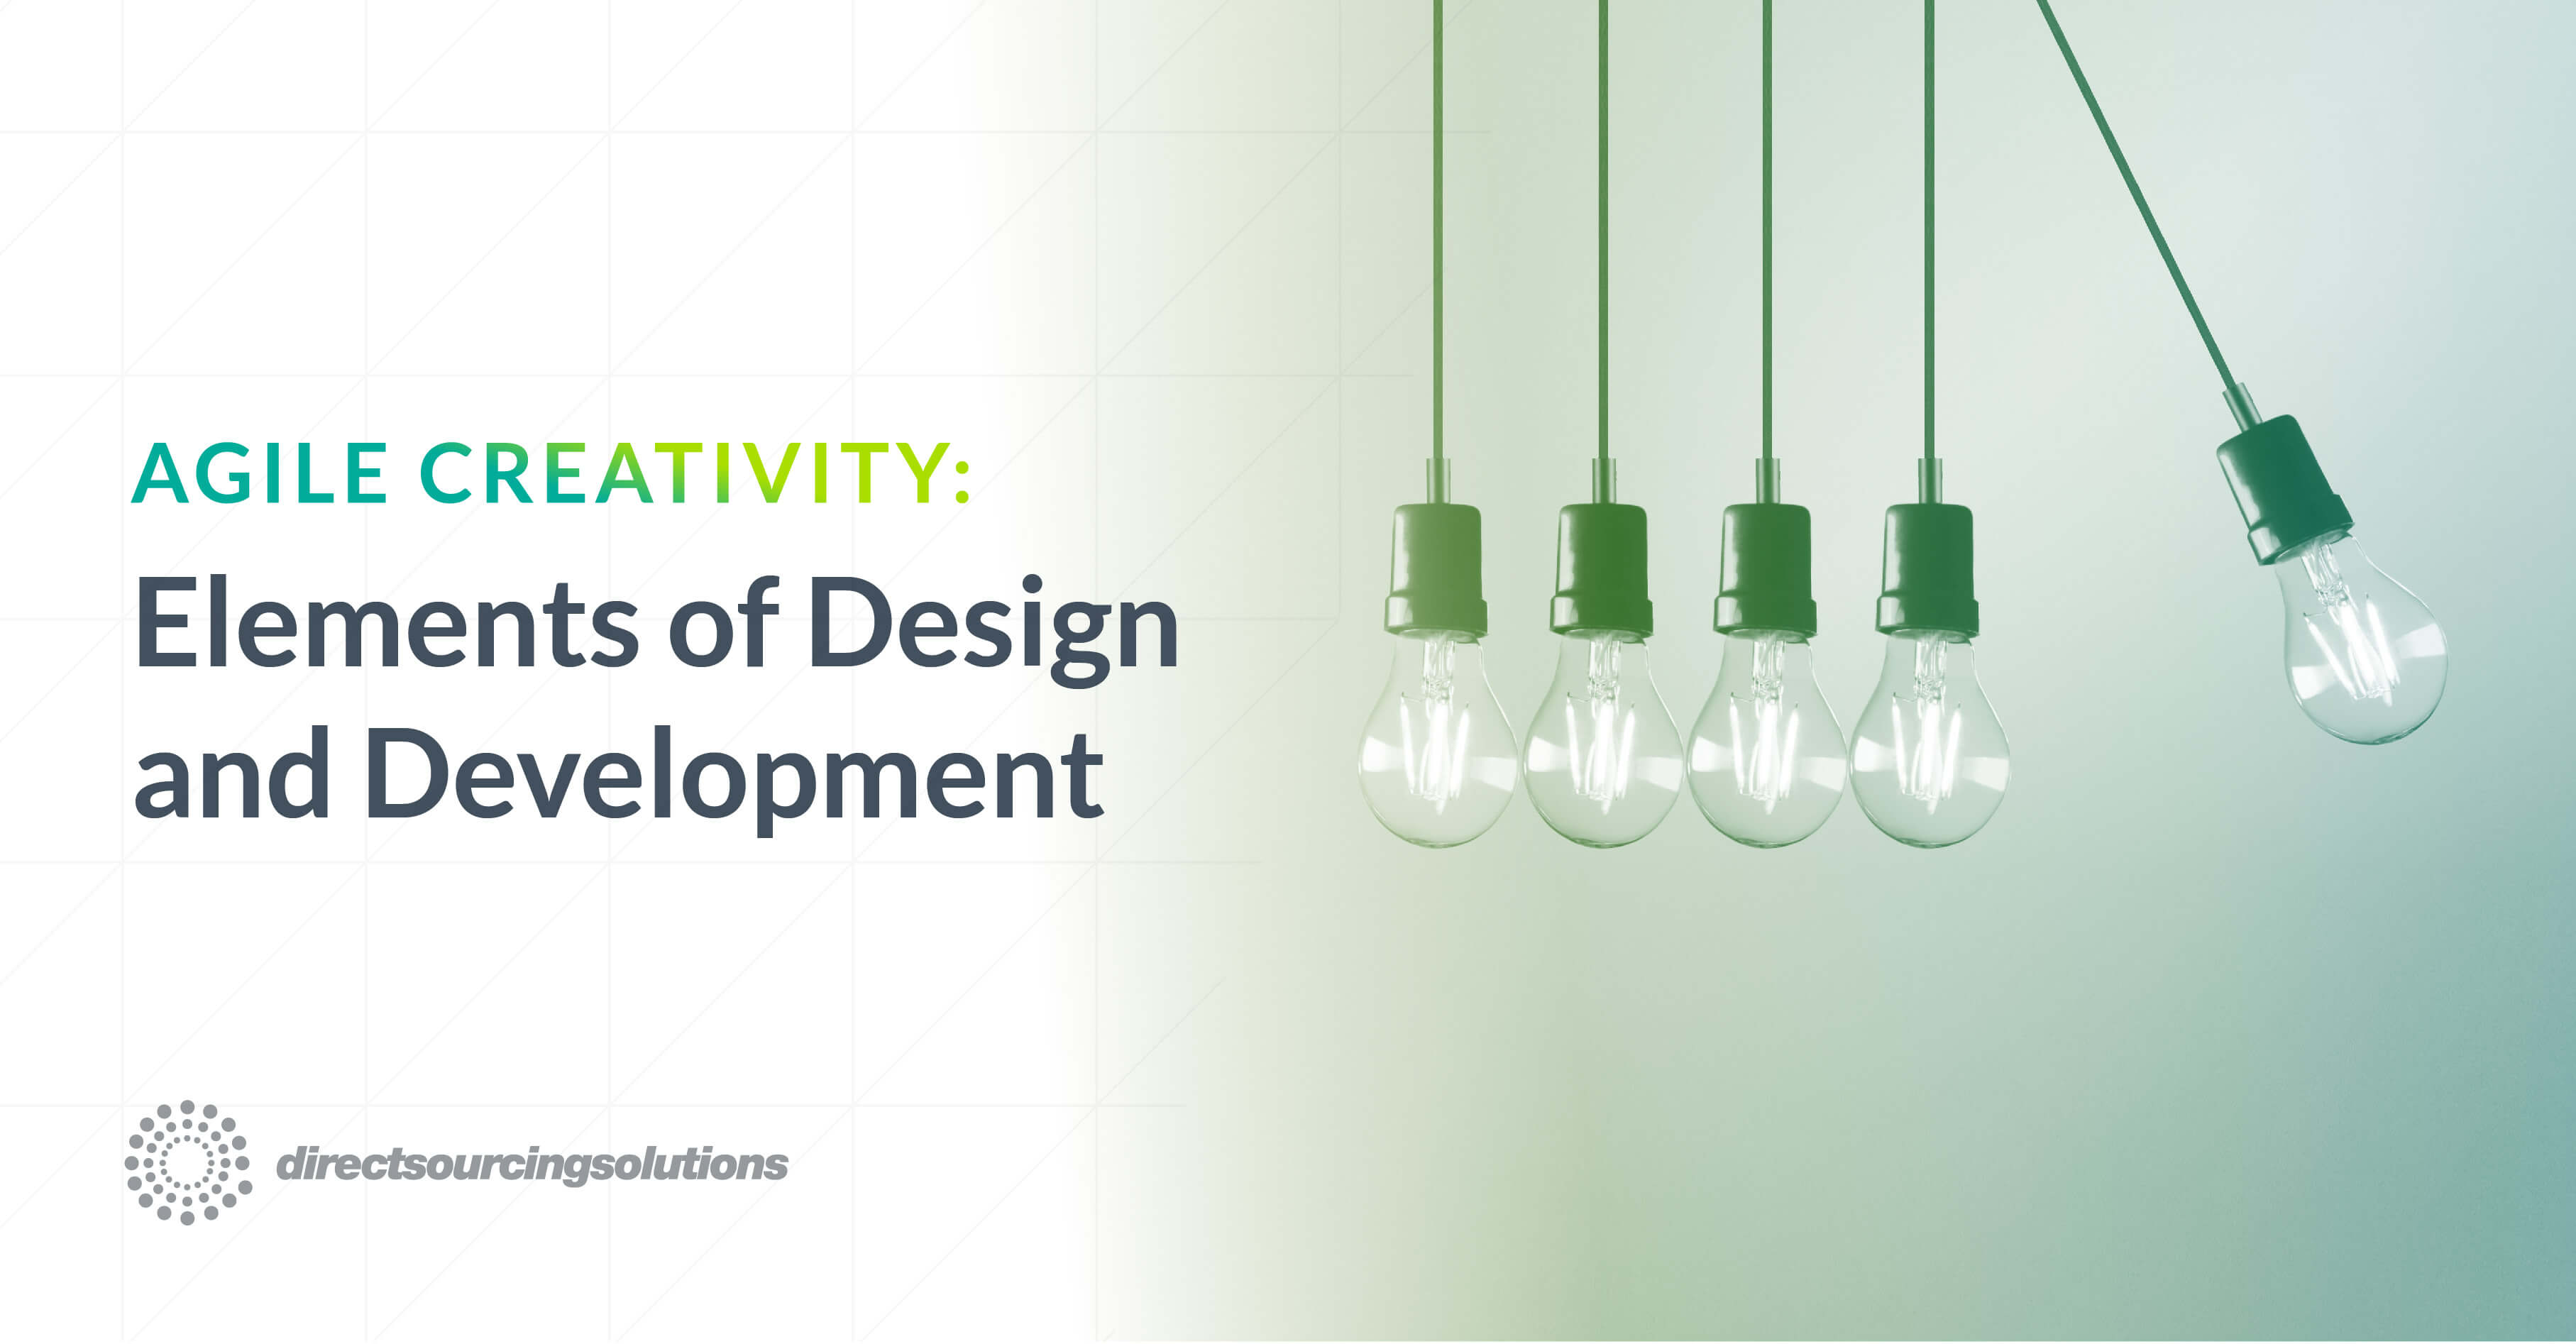 Agile Creativity Fusing Elements of Design and Development